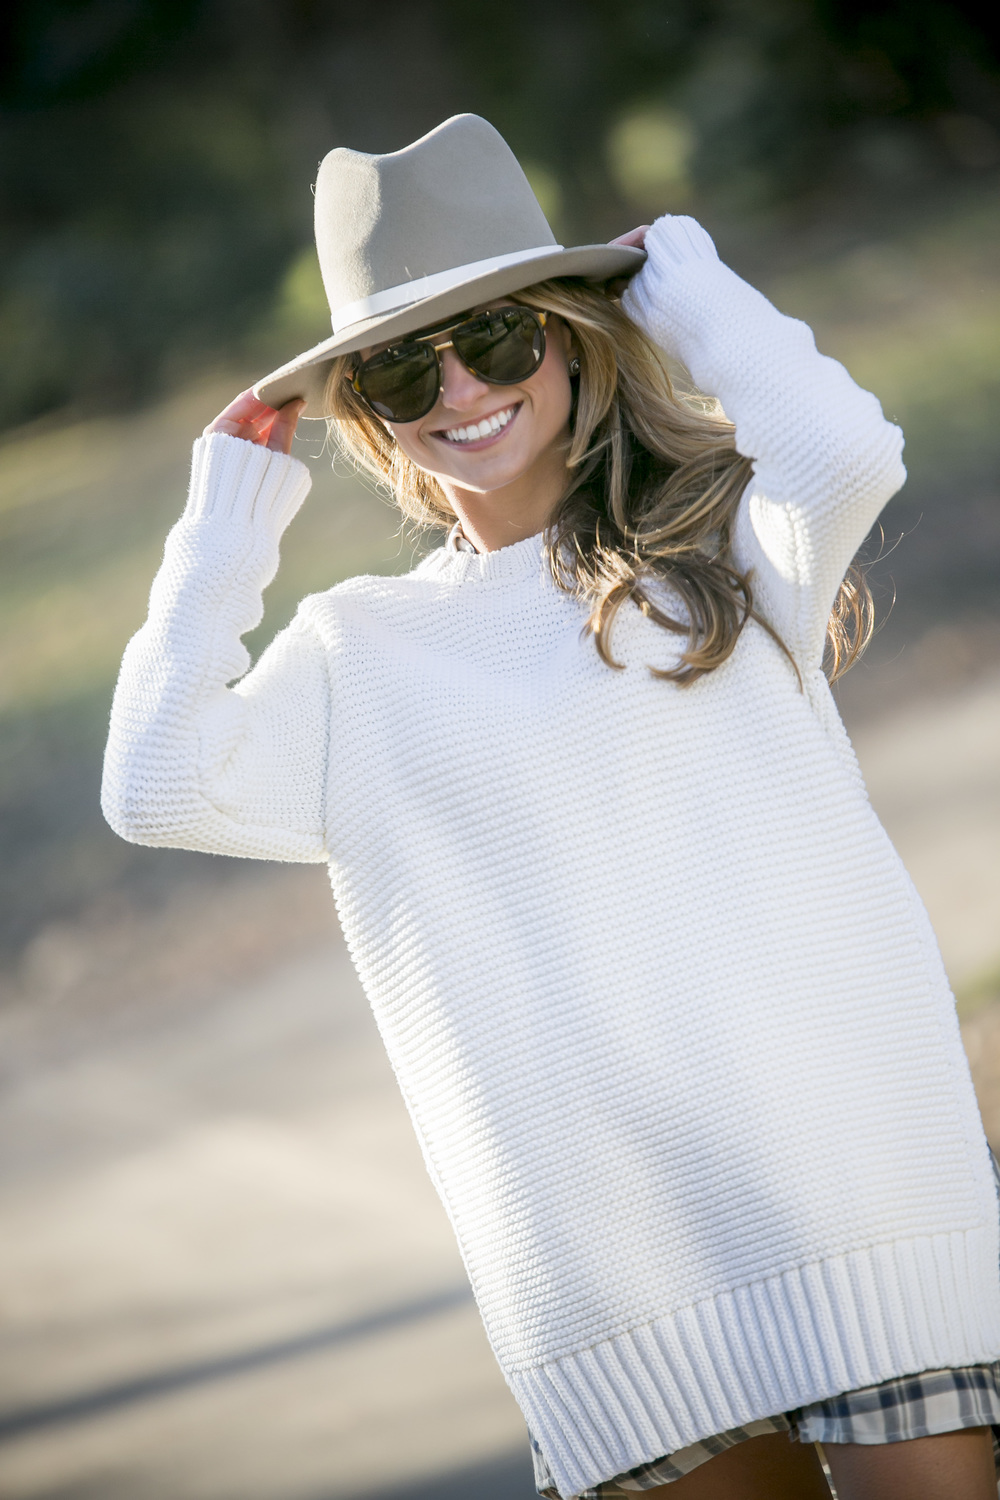 Sweater:Zara|Dress: BB Dakota |Hat:Rag&Bone(  similar  )|Boots: Stuart Weitzman |Bag:Sara Battaglia(  similar here  )    Dino Petrocelli Photography